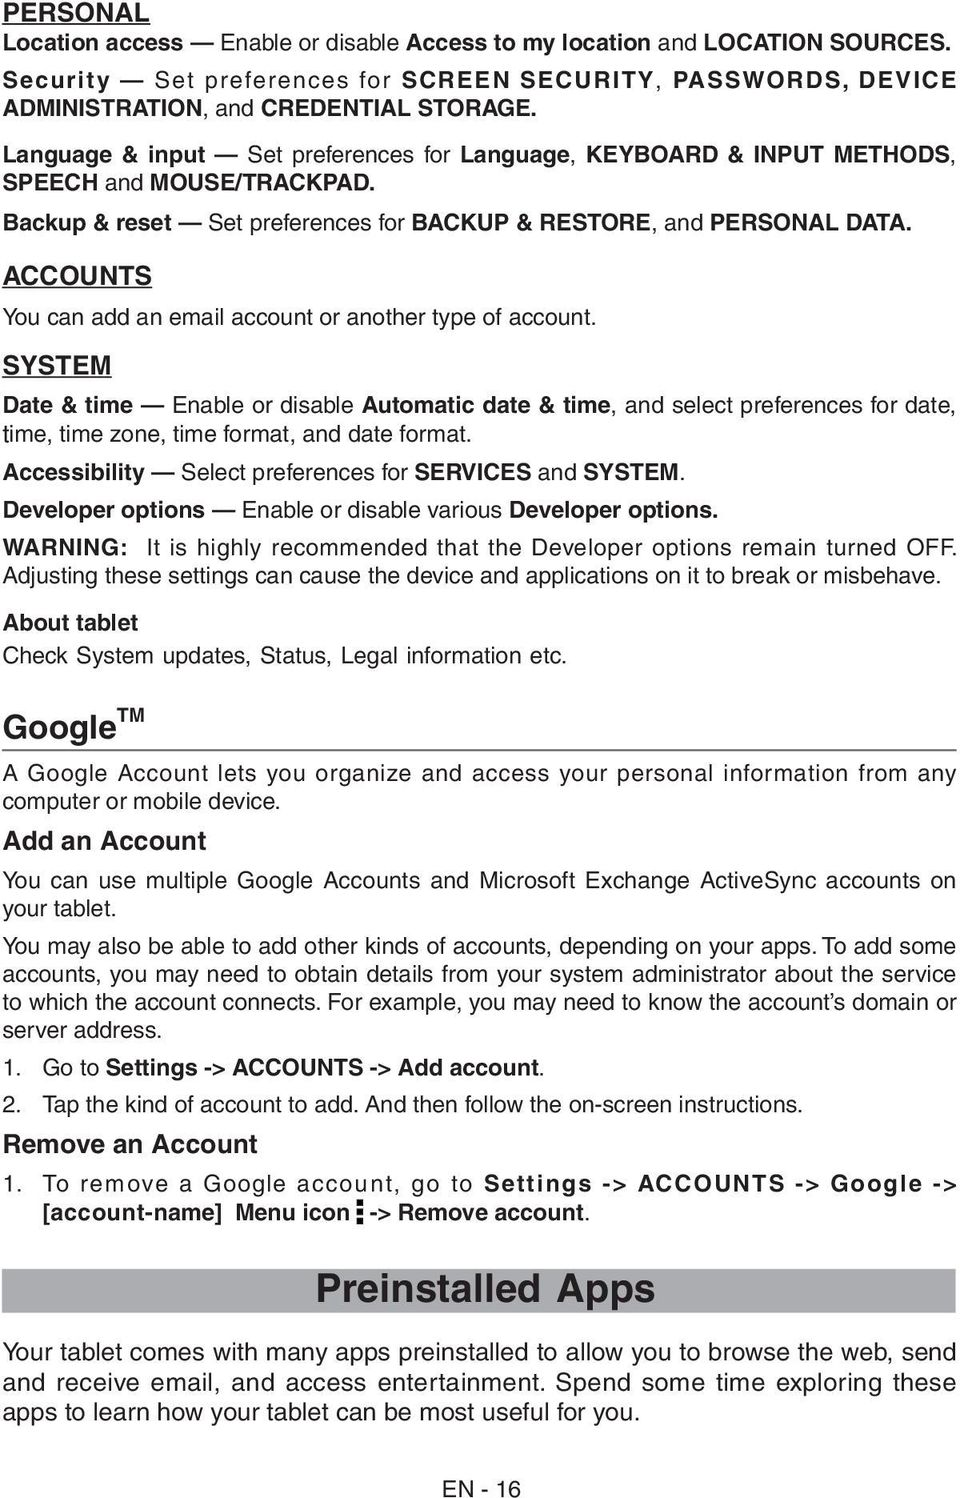 ACCOUNTS You can add an email account or another type of account.